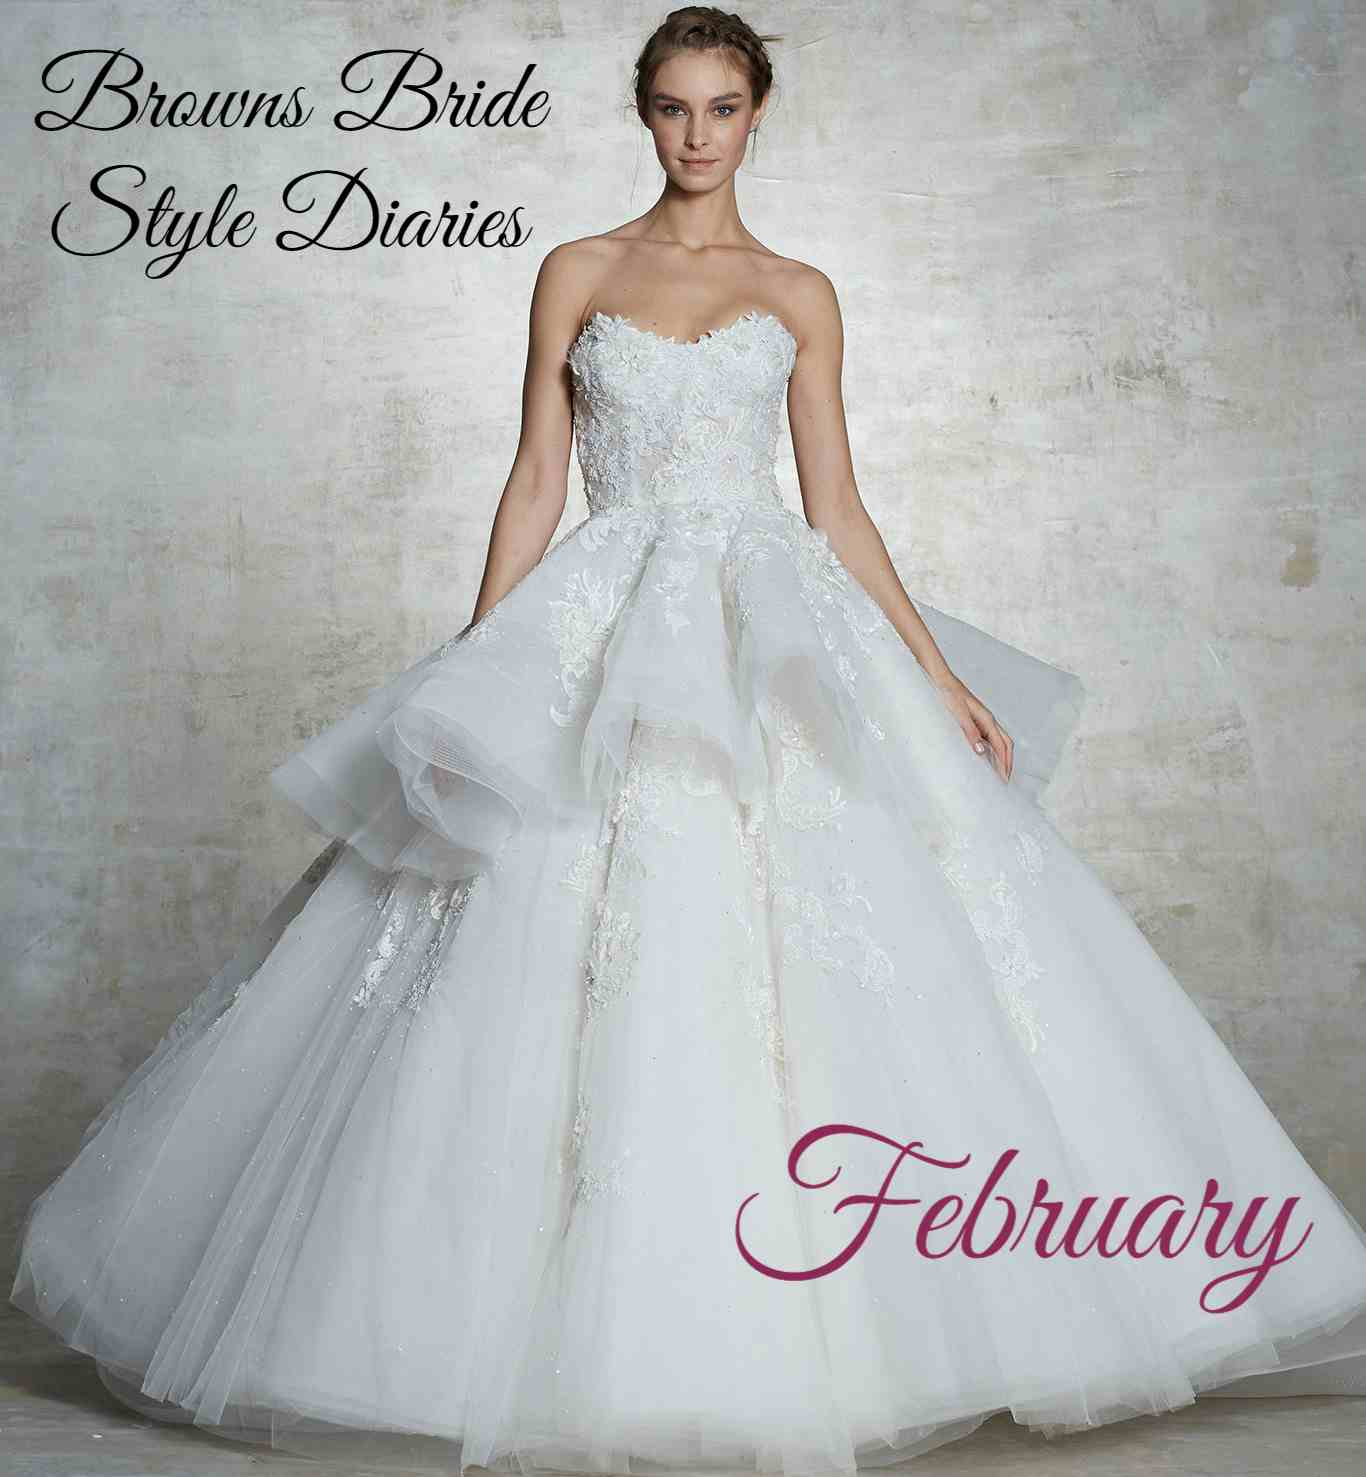 9bf2855a8 BROWNS BRIDE STYLE DIARIES - FEBRUARY 2019 - Browns Bride